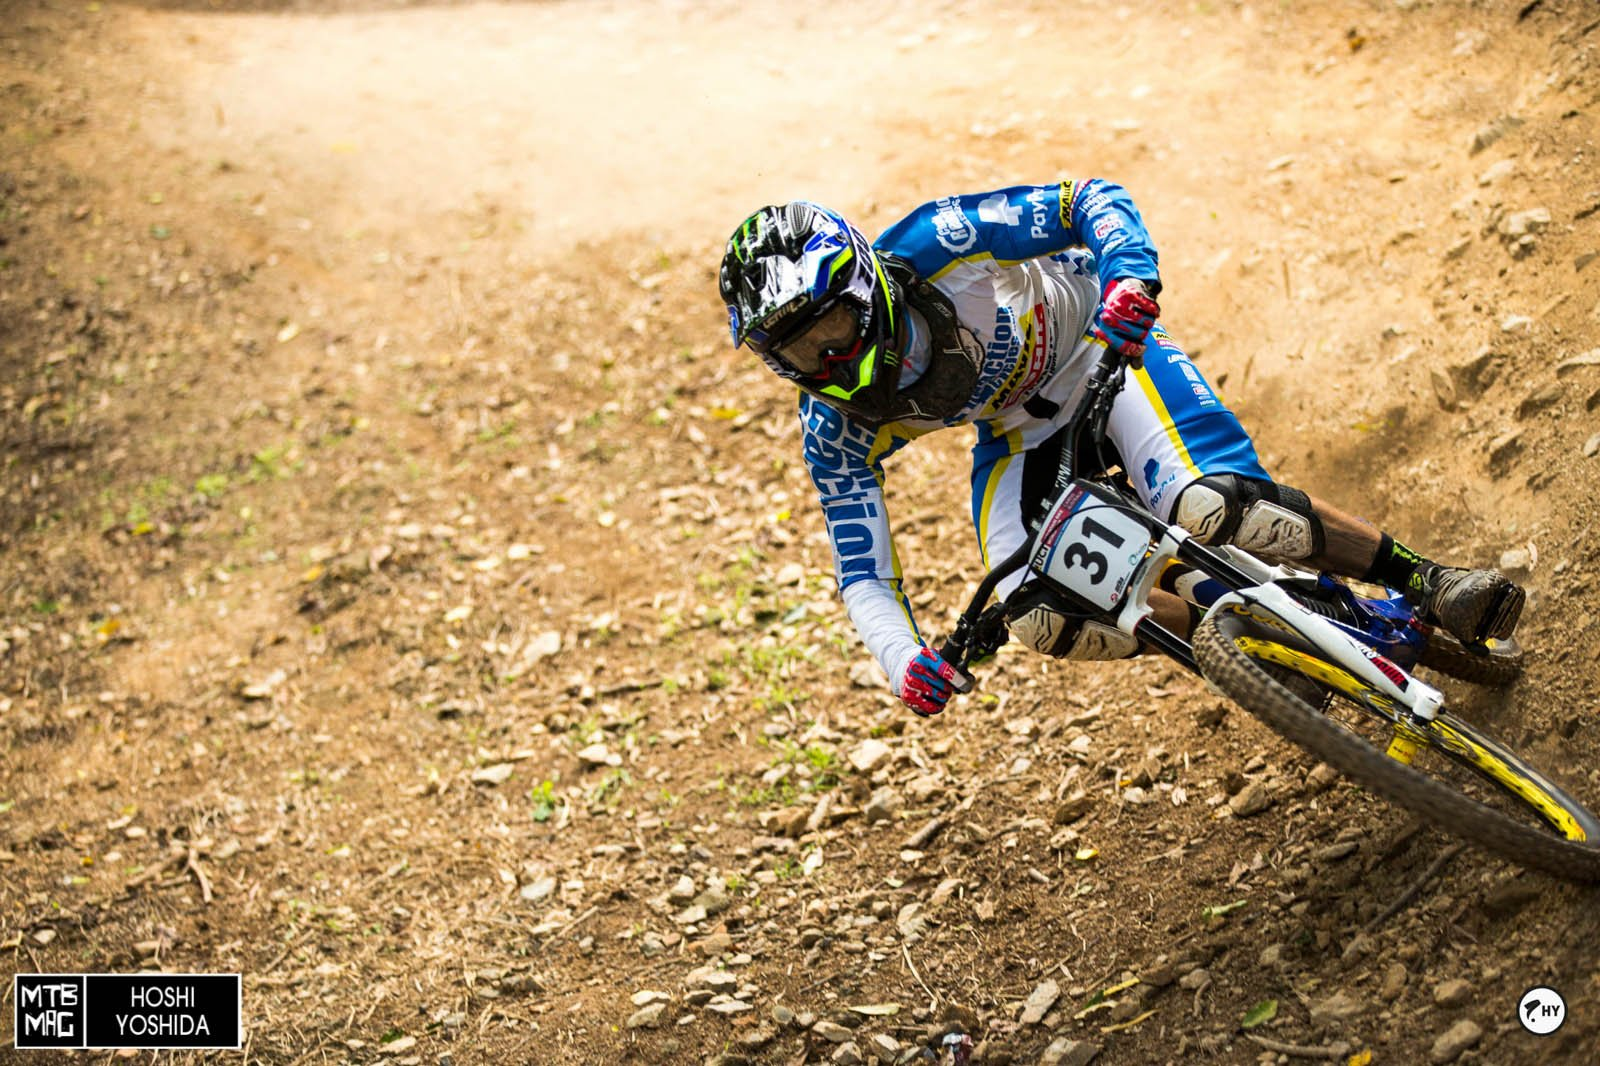 Sam Hill getting his lean on in home turf